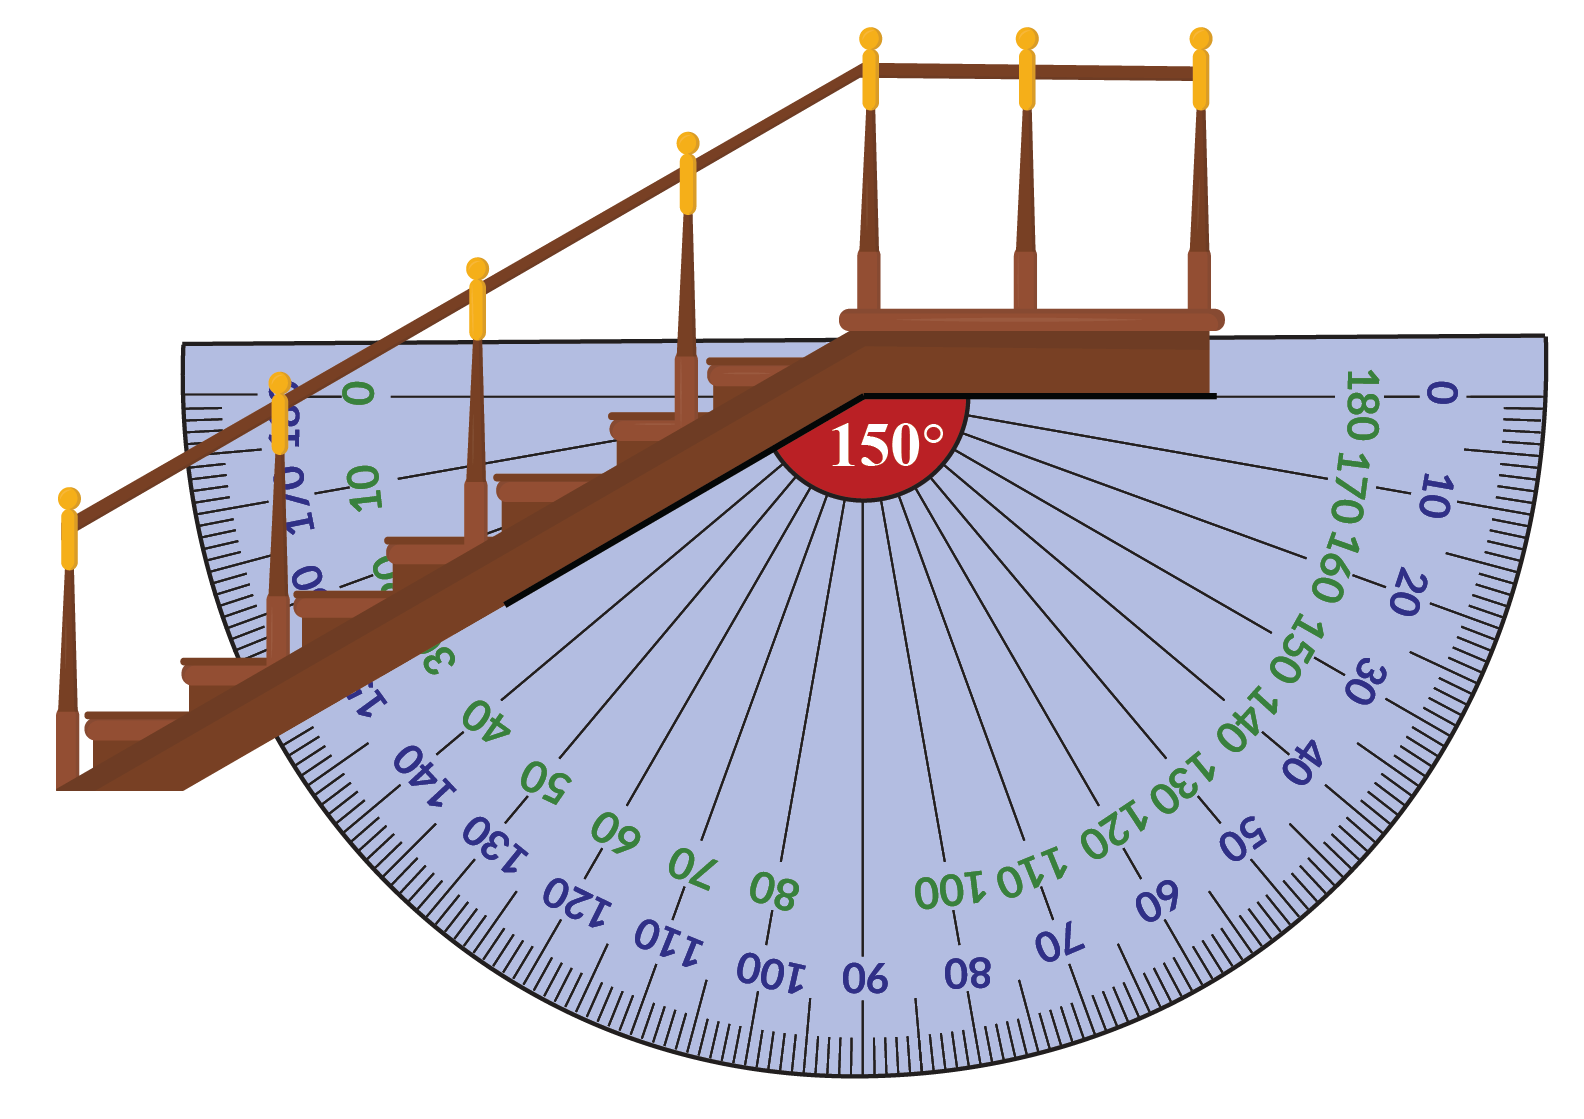 Angle formed beneath the staircase is 150 degrees.